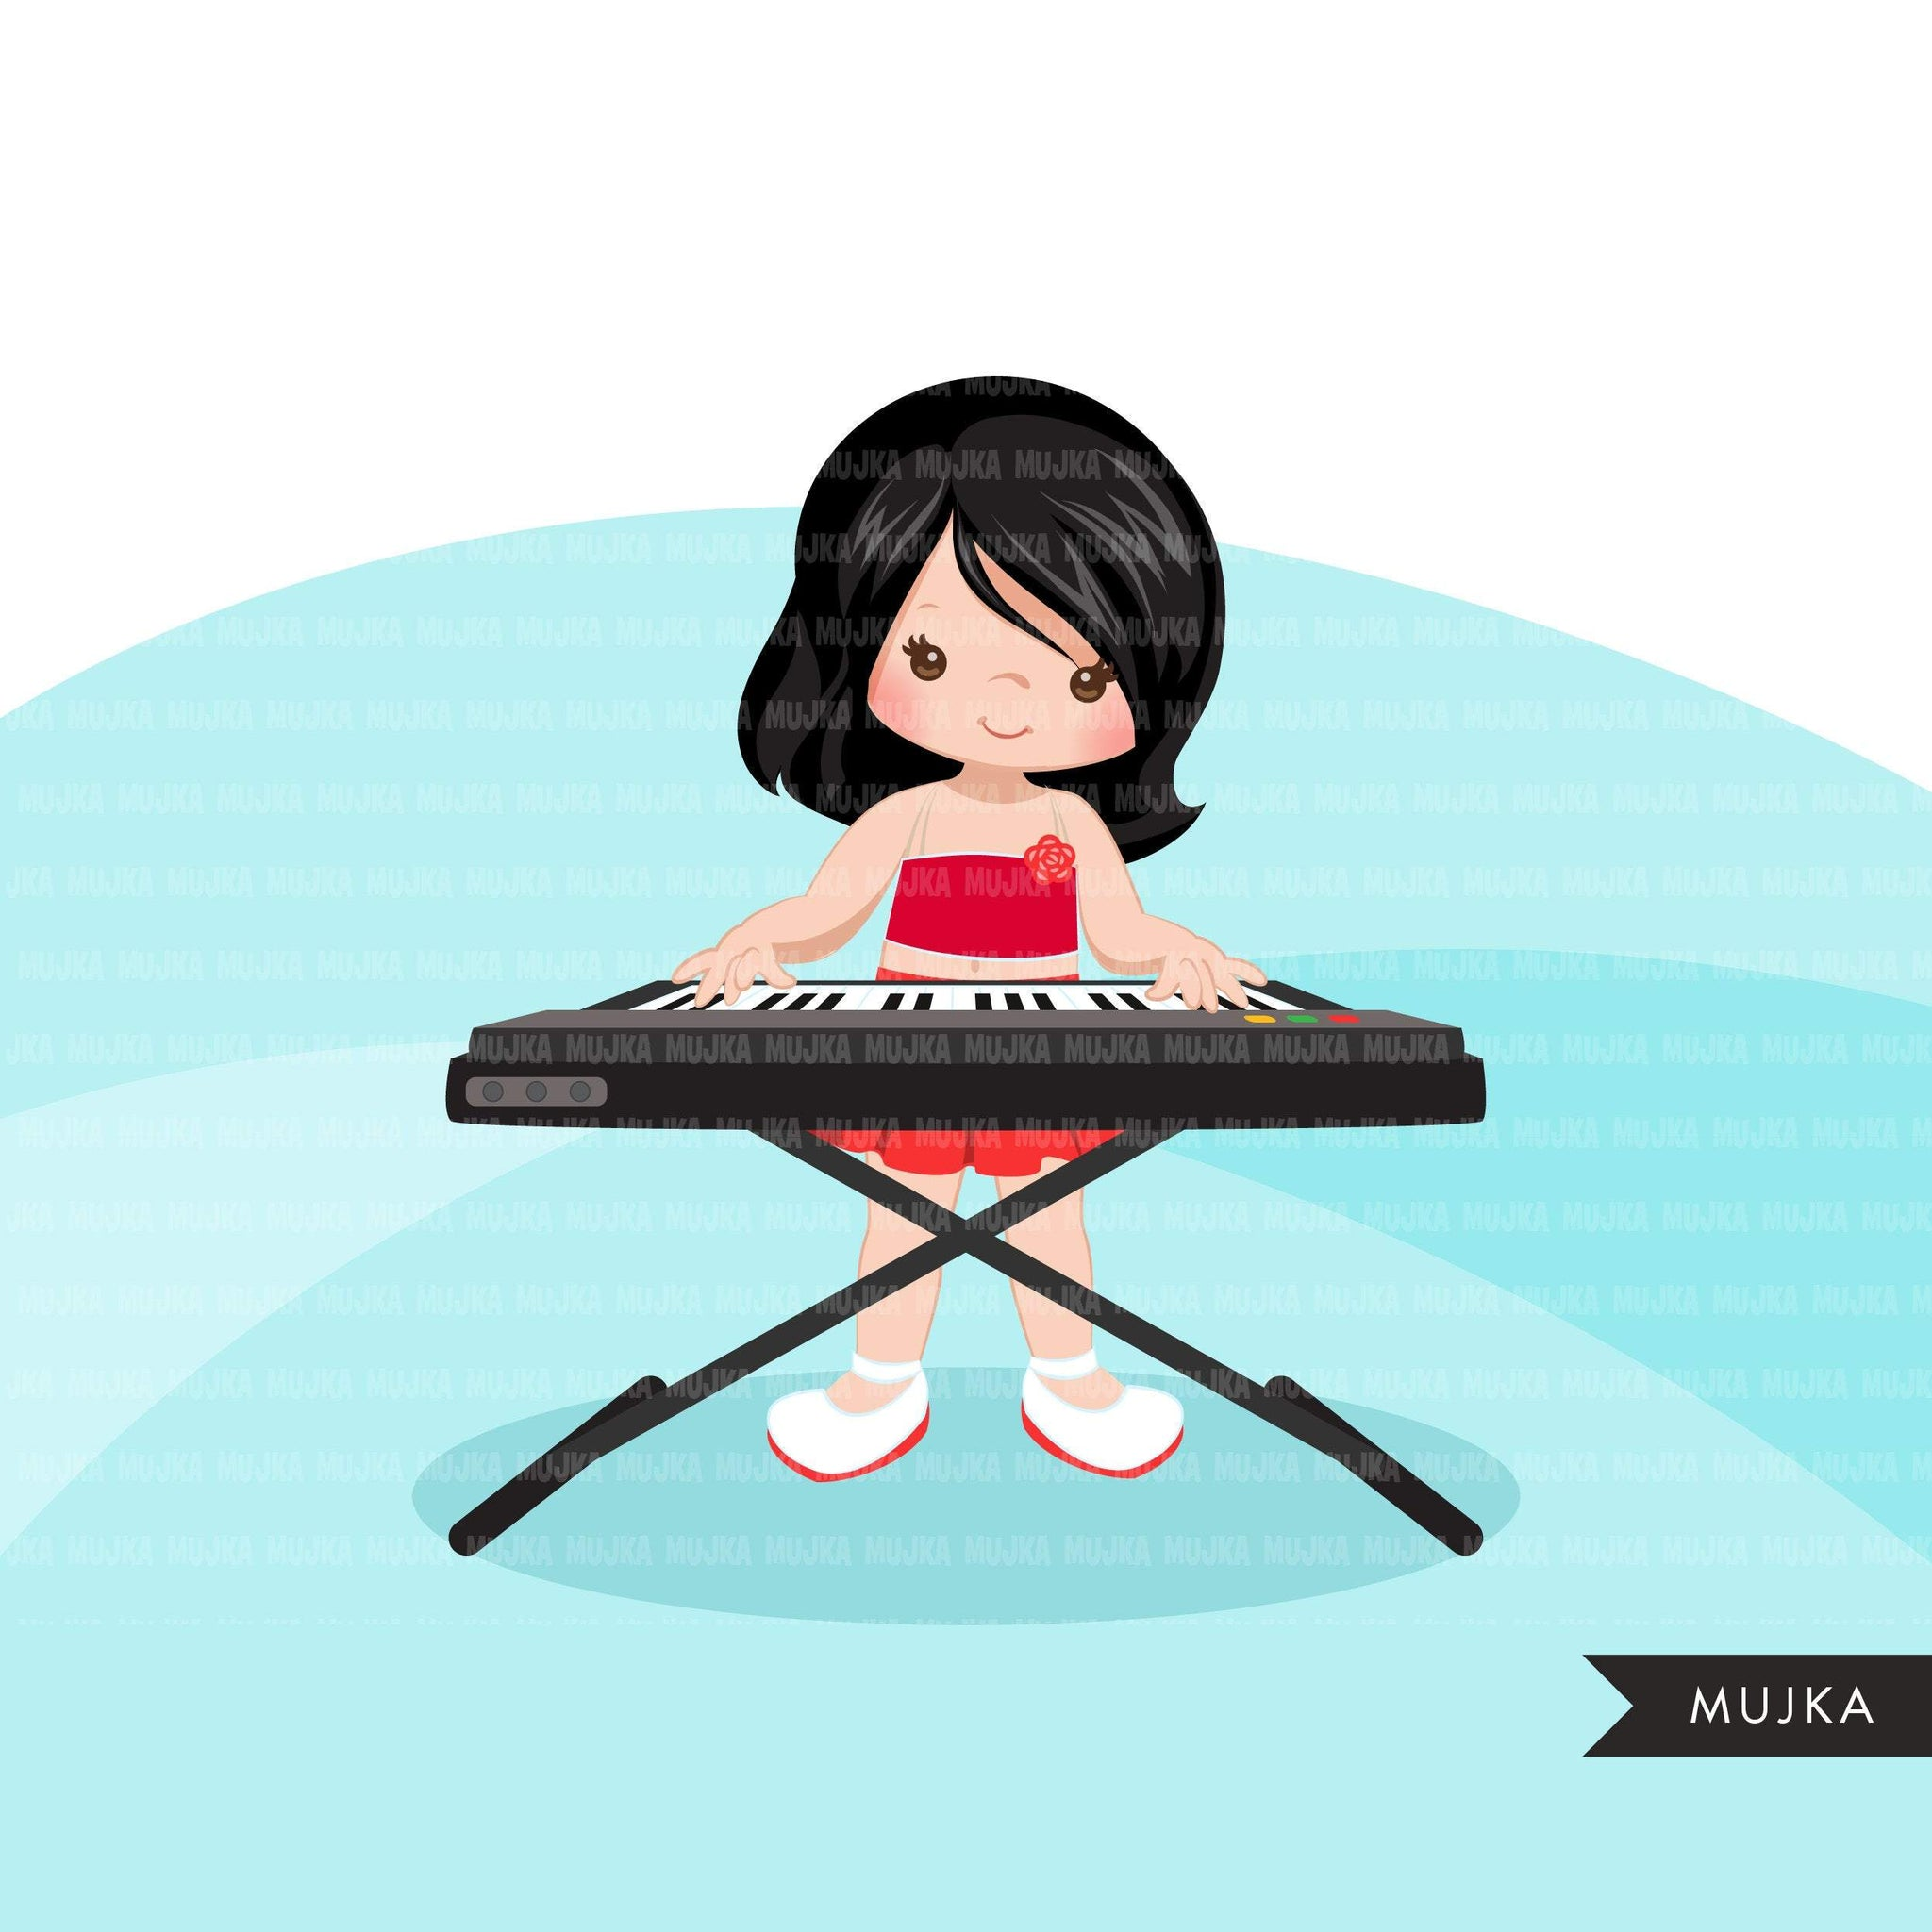 Keyboard piano clipart, Music Instruments clipart, education graphics, school band, kids playing music sublimation graphics, PNG clip art